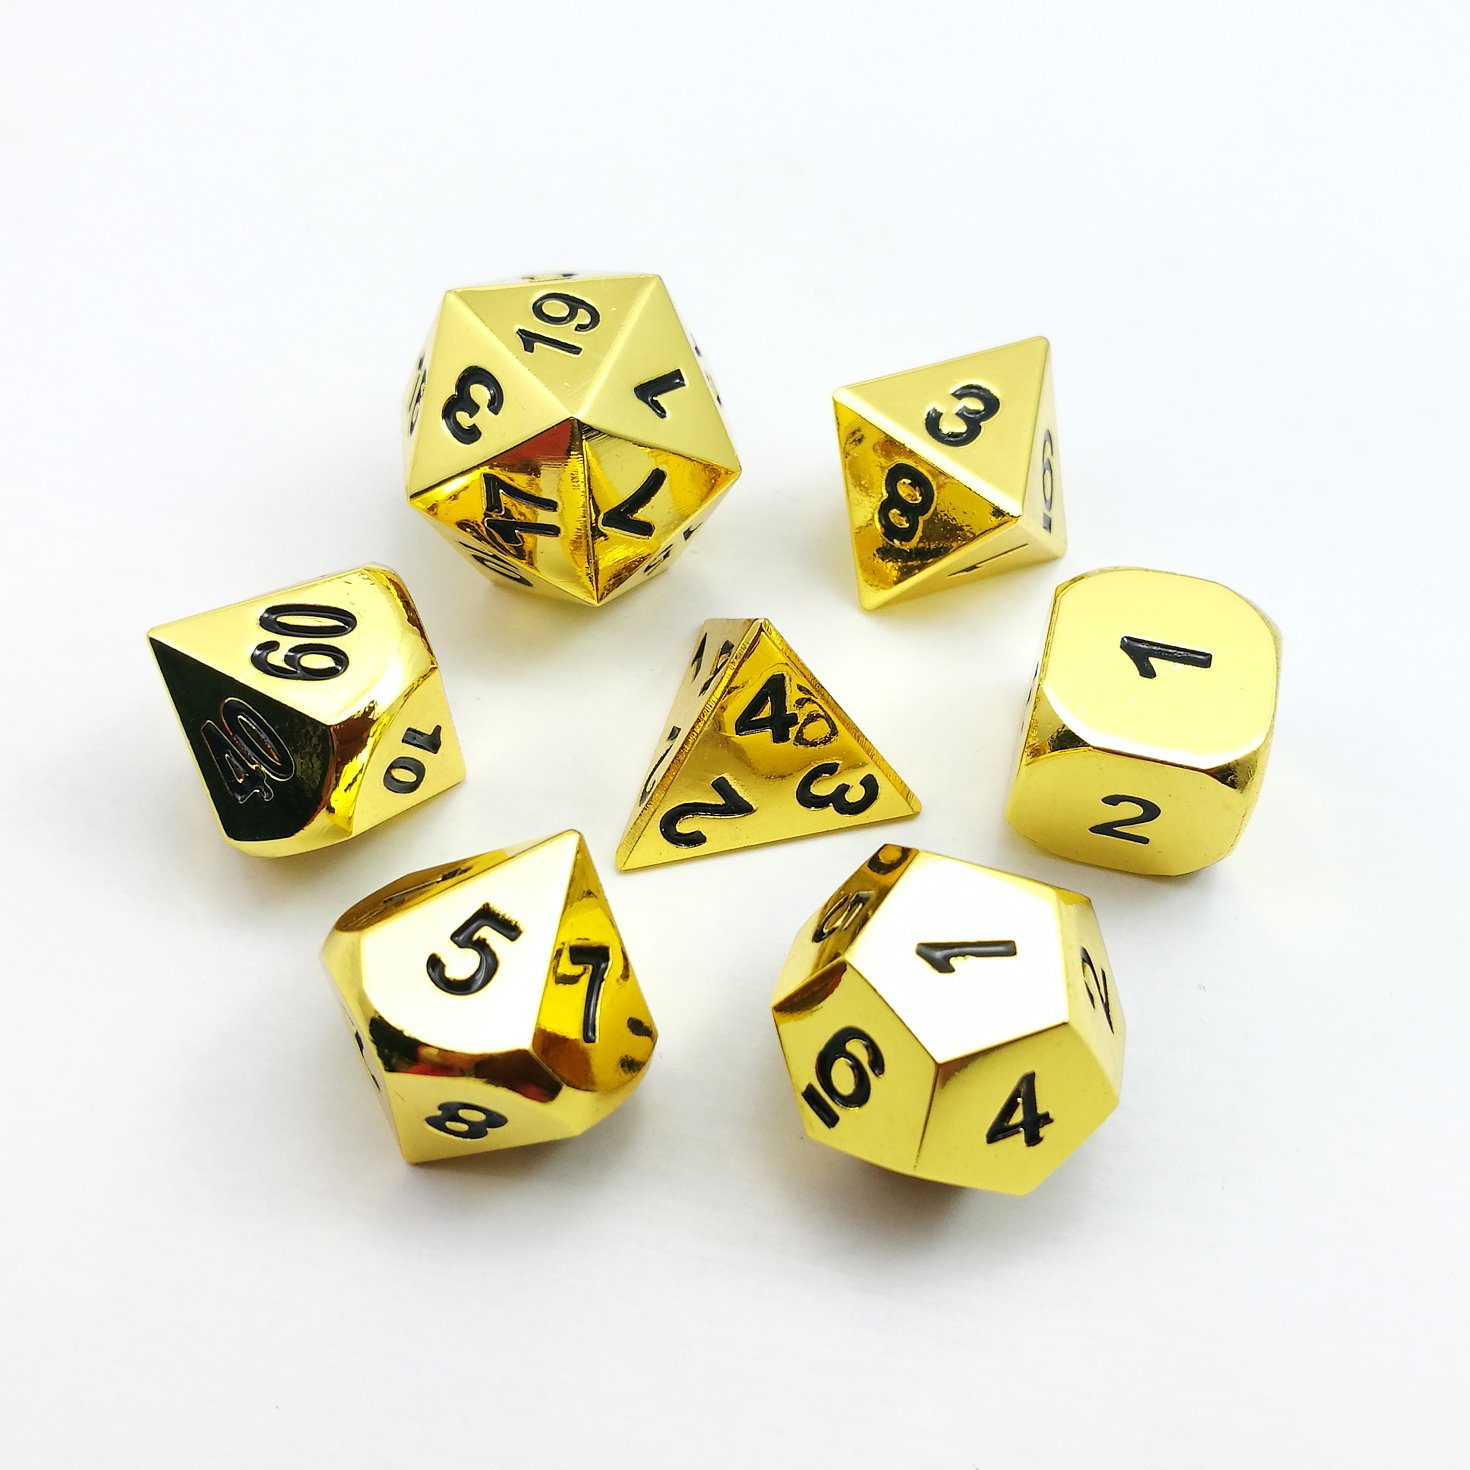 Set of 7 Deluxe Metal Golden Polyhedral Game Dice Set, Golden RPG Game Dice 7pcs Set of d4 d6 d8 d10 d12 d20 d%